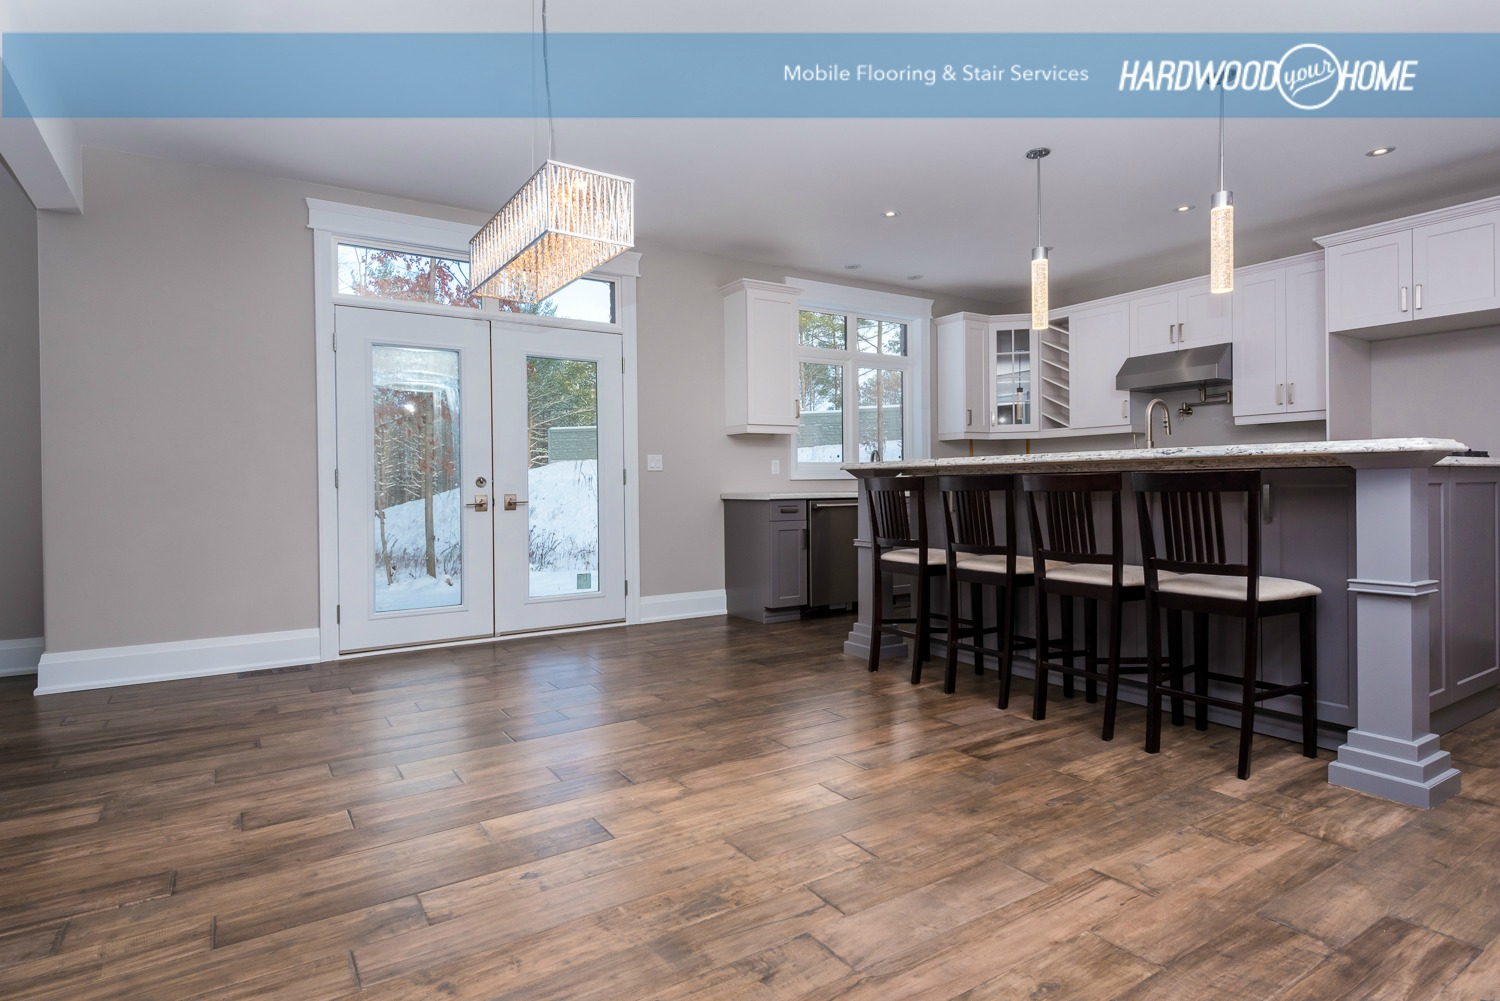 Can I put hardwood floors in my kitchen   Hardwood Your Home